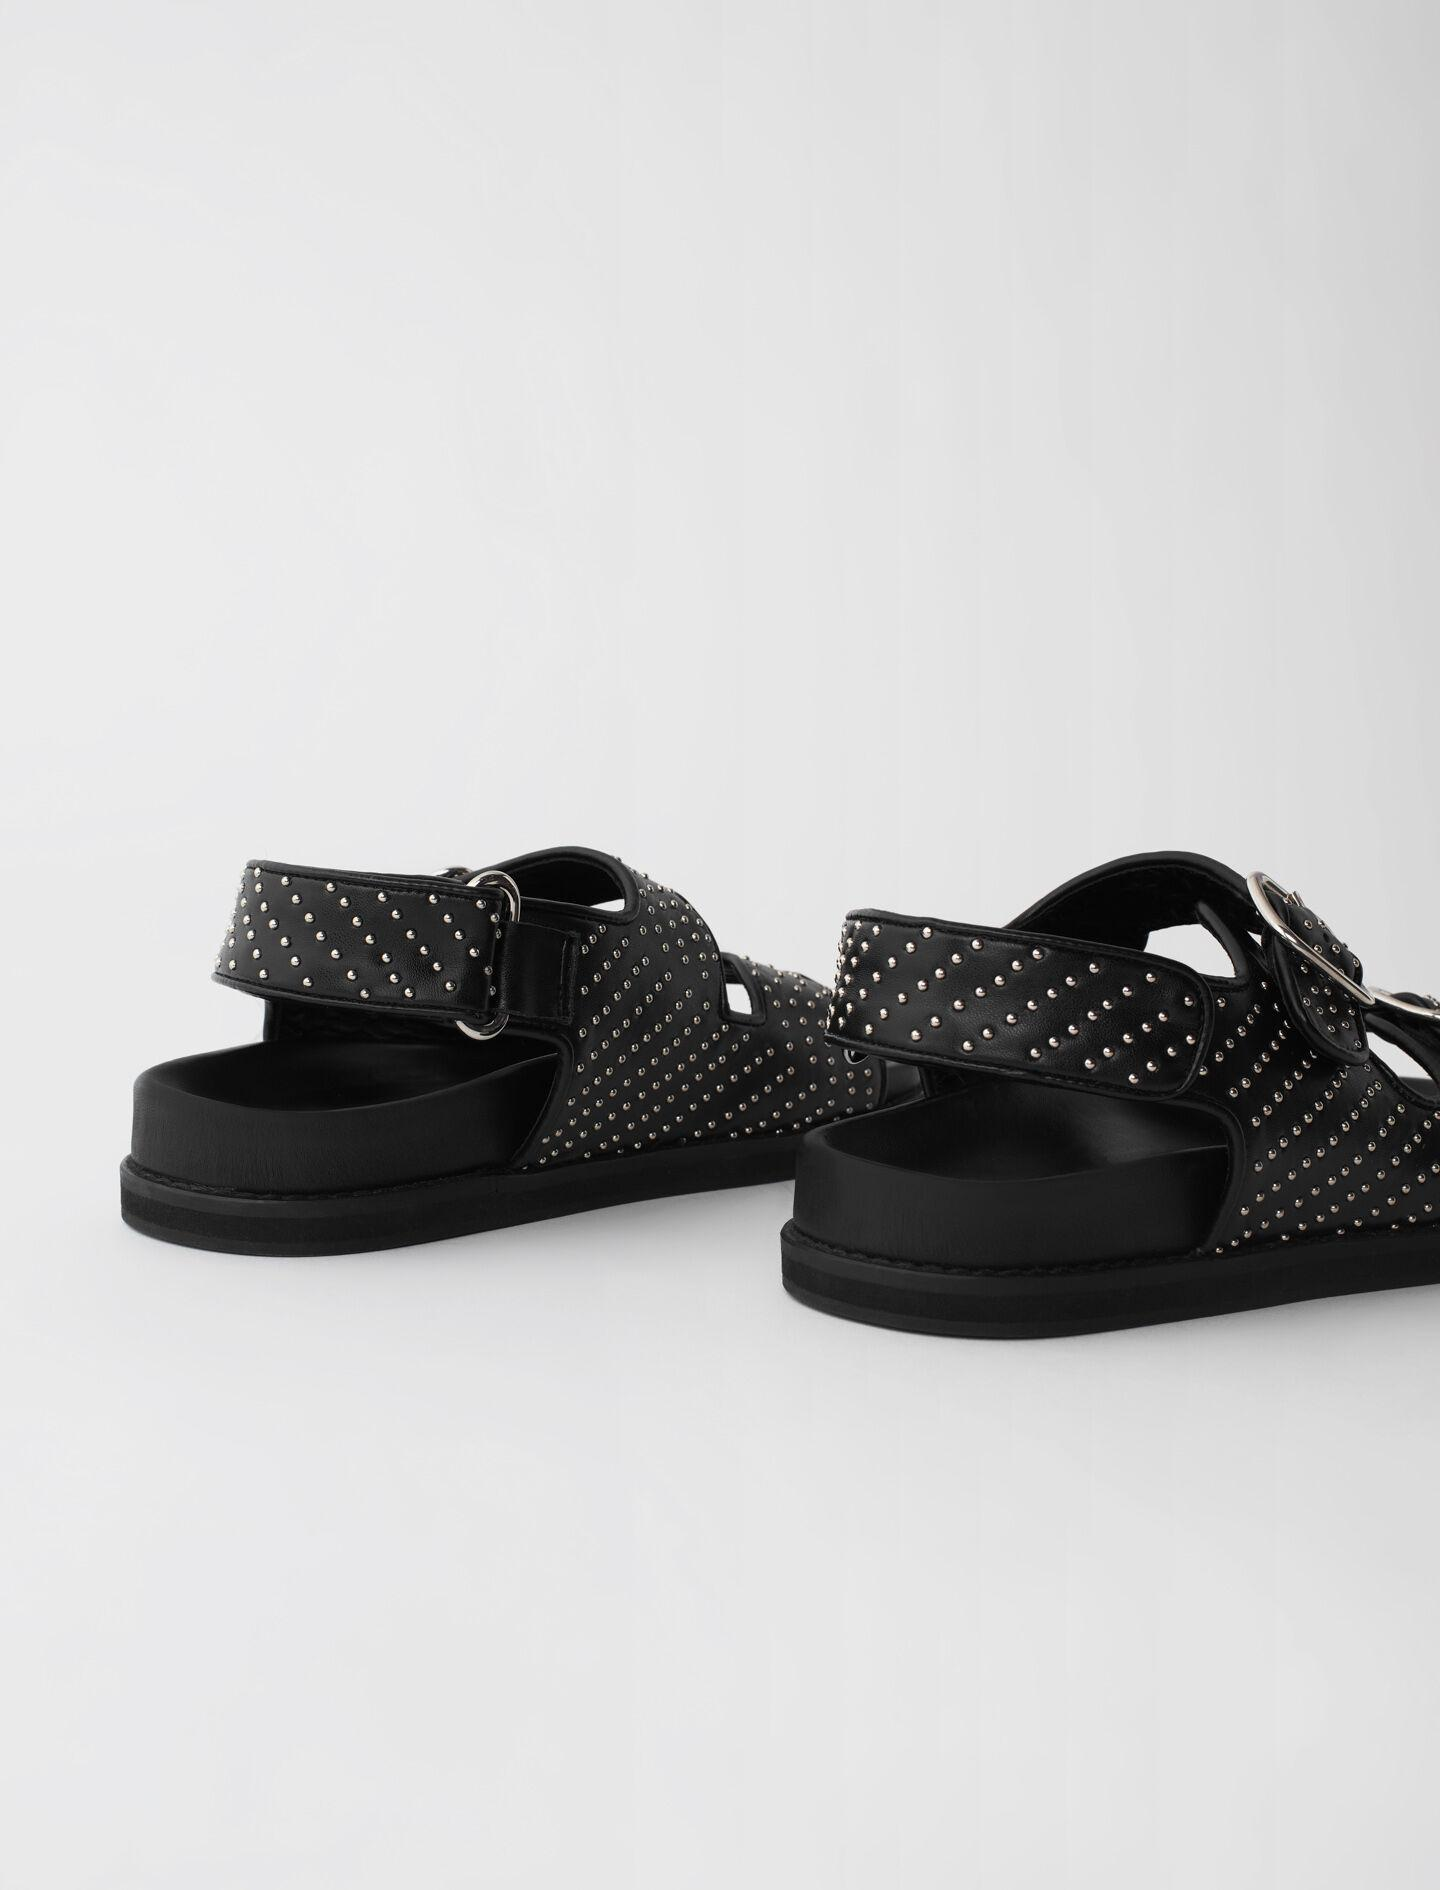 STUDDED SANDALS WITH BUCKLES 2